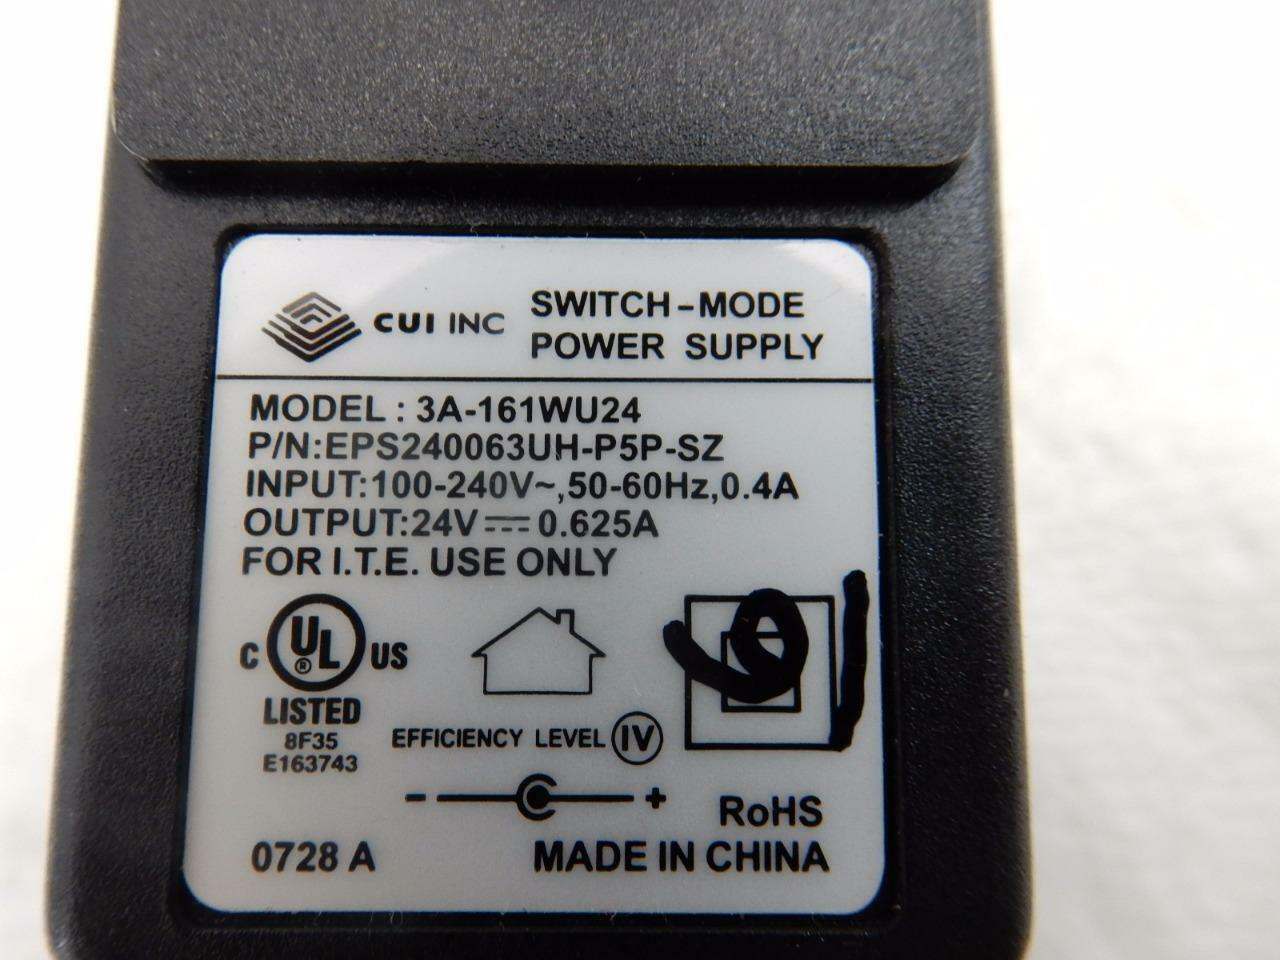 Cui Switch Mode Power Supply Adapter 24v 0625a 3a 161wu24 Ebay 24 Volt 30 Amp Single Output Norton Secured Powered By Verisign